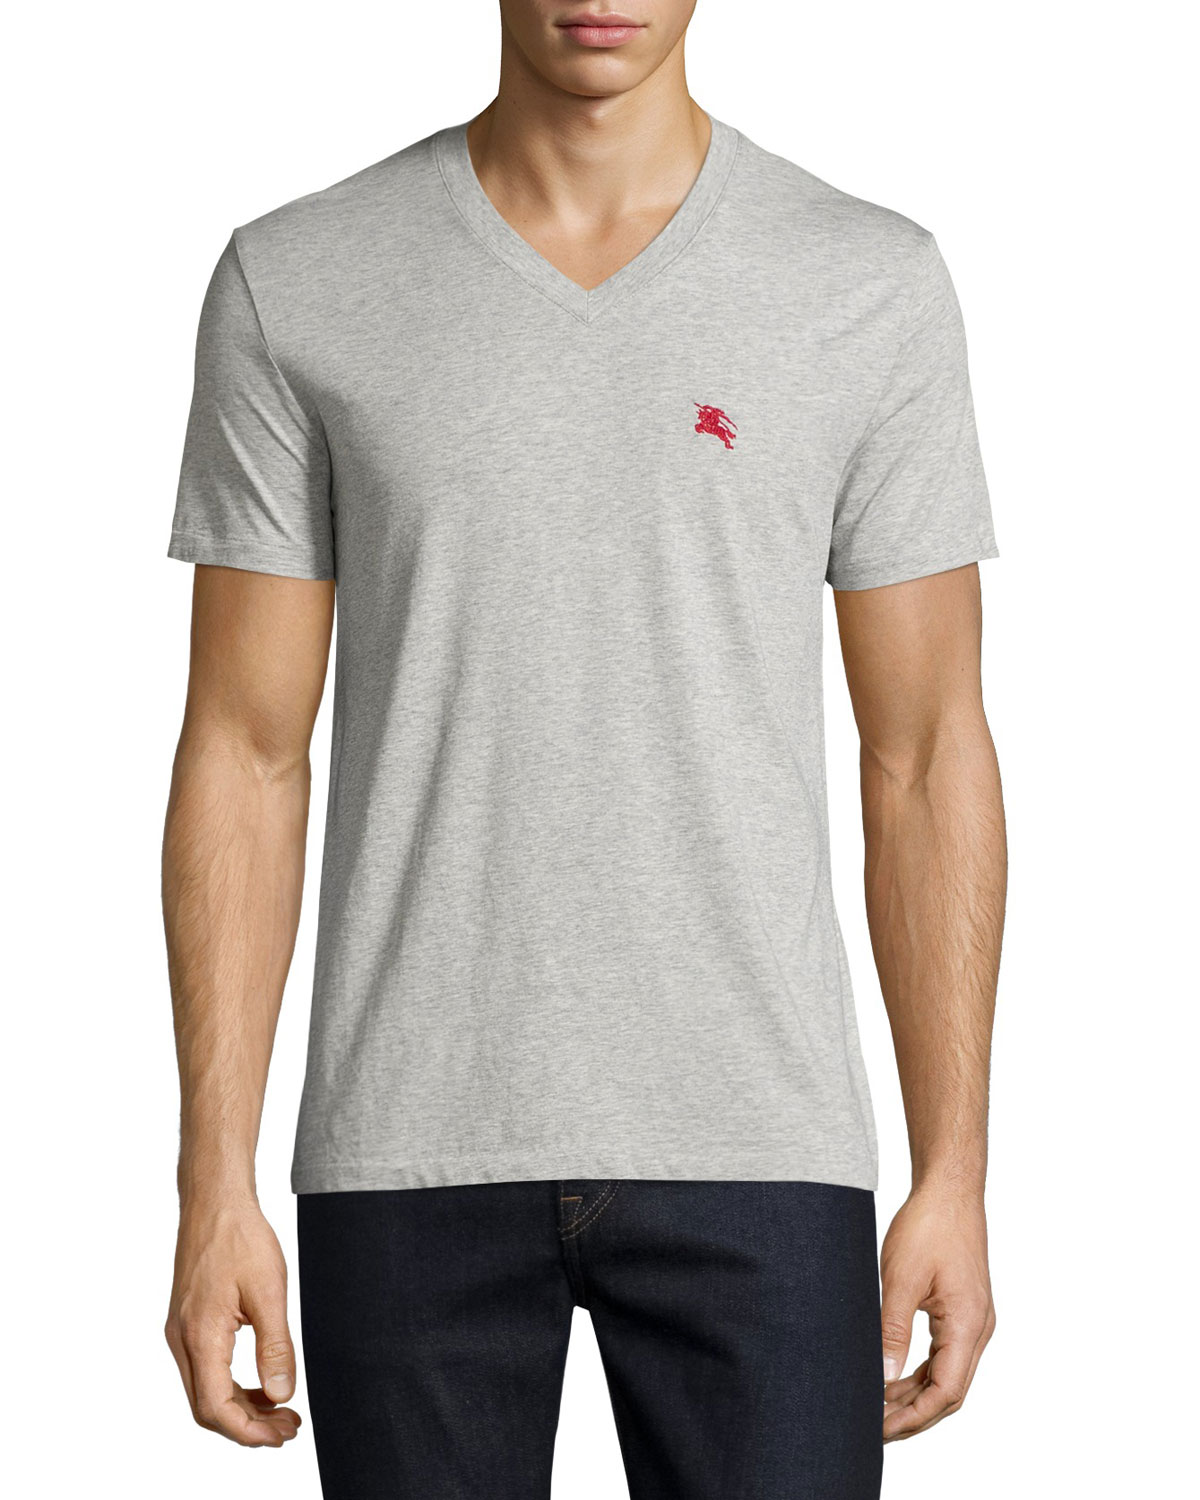 Lindon Cotton V-Neck T-Shirt, Gray